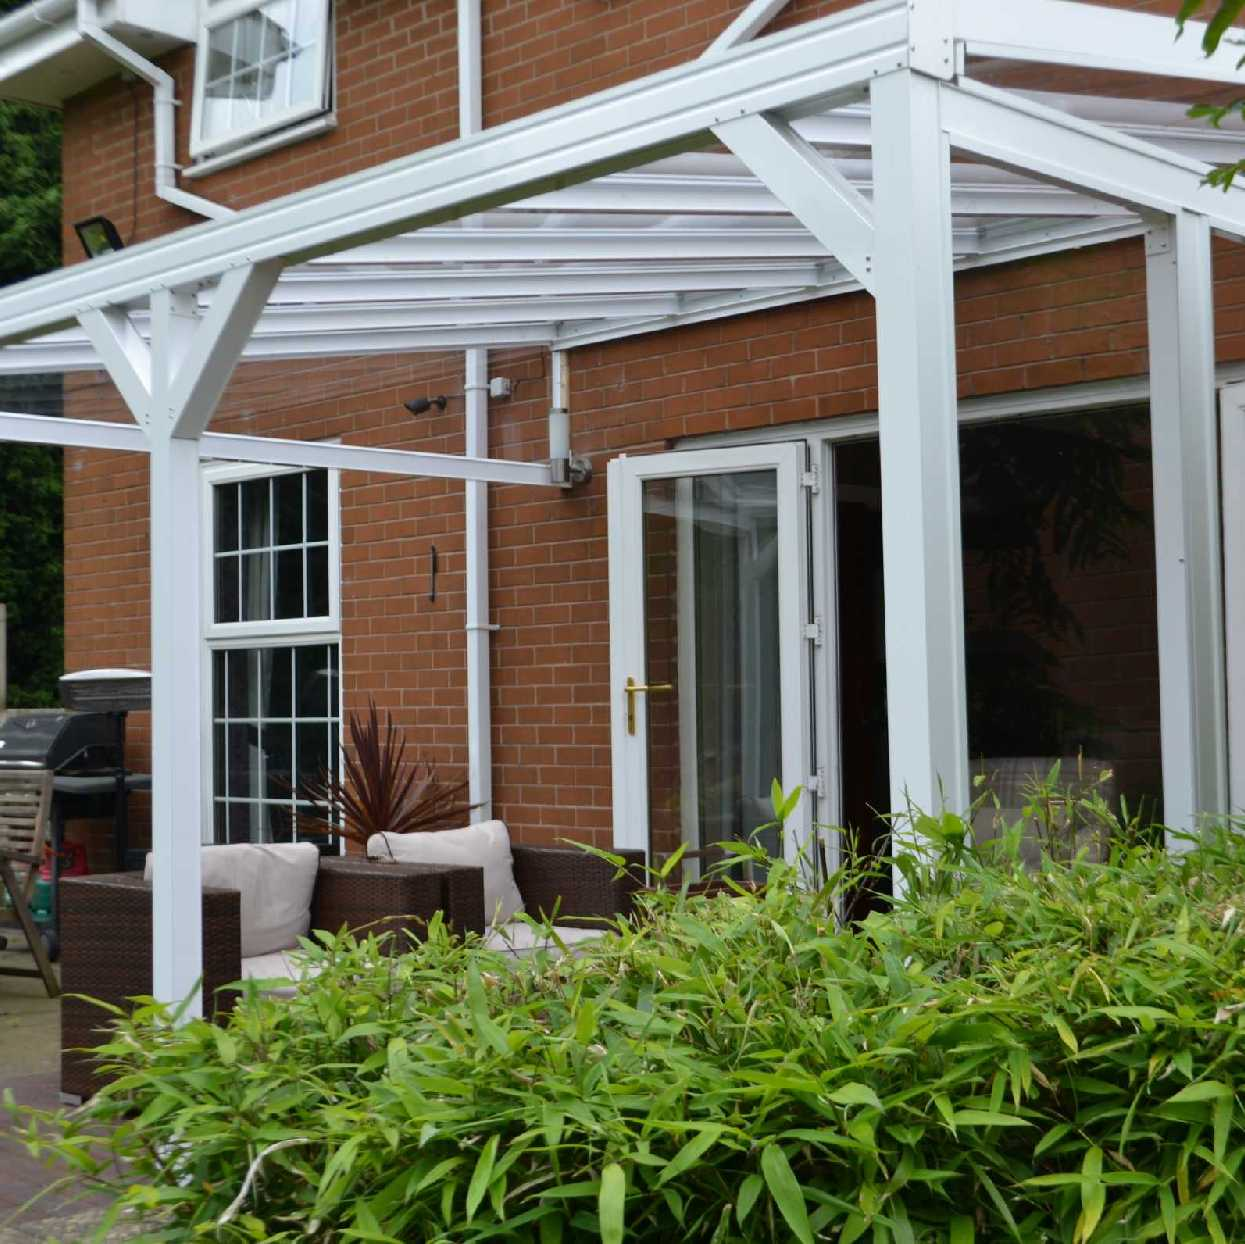 Omega Smart Lean-To Canopy with 6mm Glass Clear Plate Polycarbonate Glazing - 3.5m (W) x 3.5m (P), (3) Supporting Posts from Omega Build